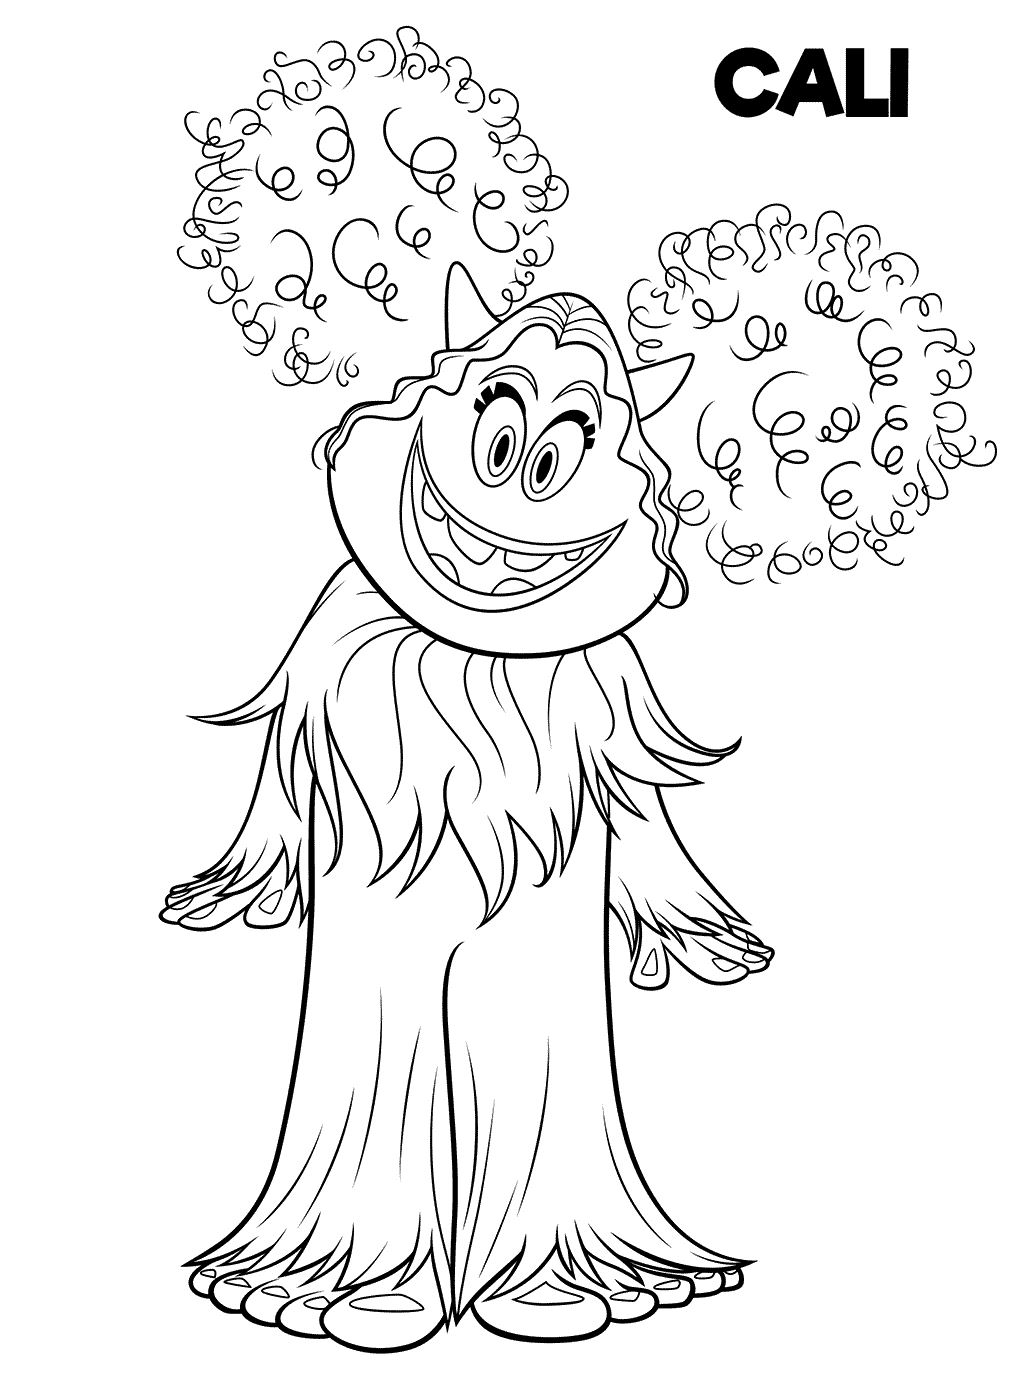 danny devito coloring page disegni da colorare dumbo colorare collection danny coloring devito page